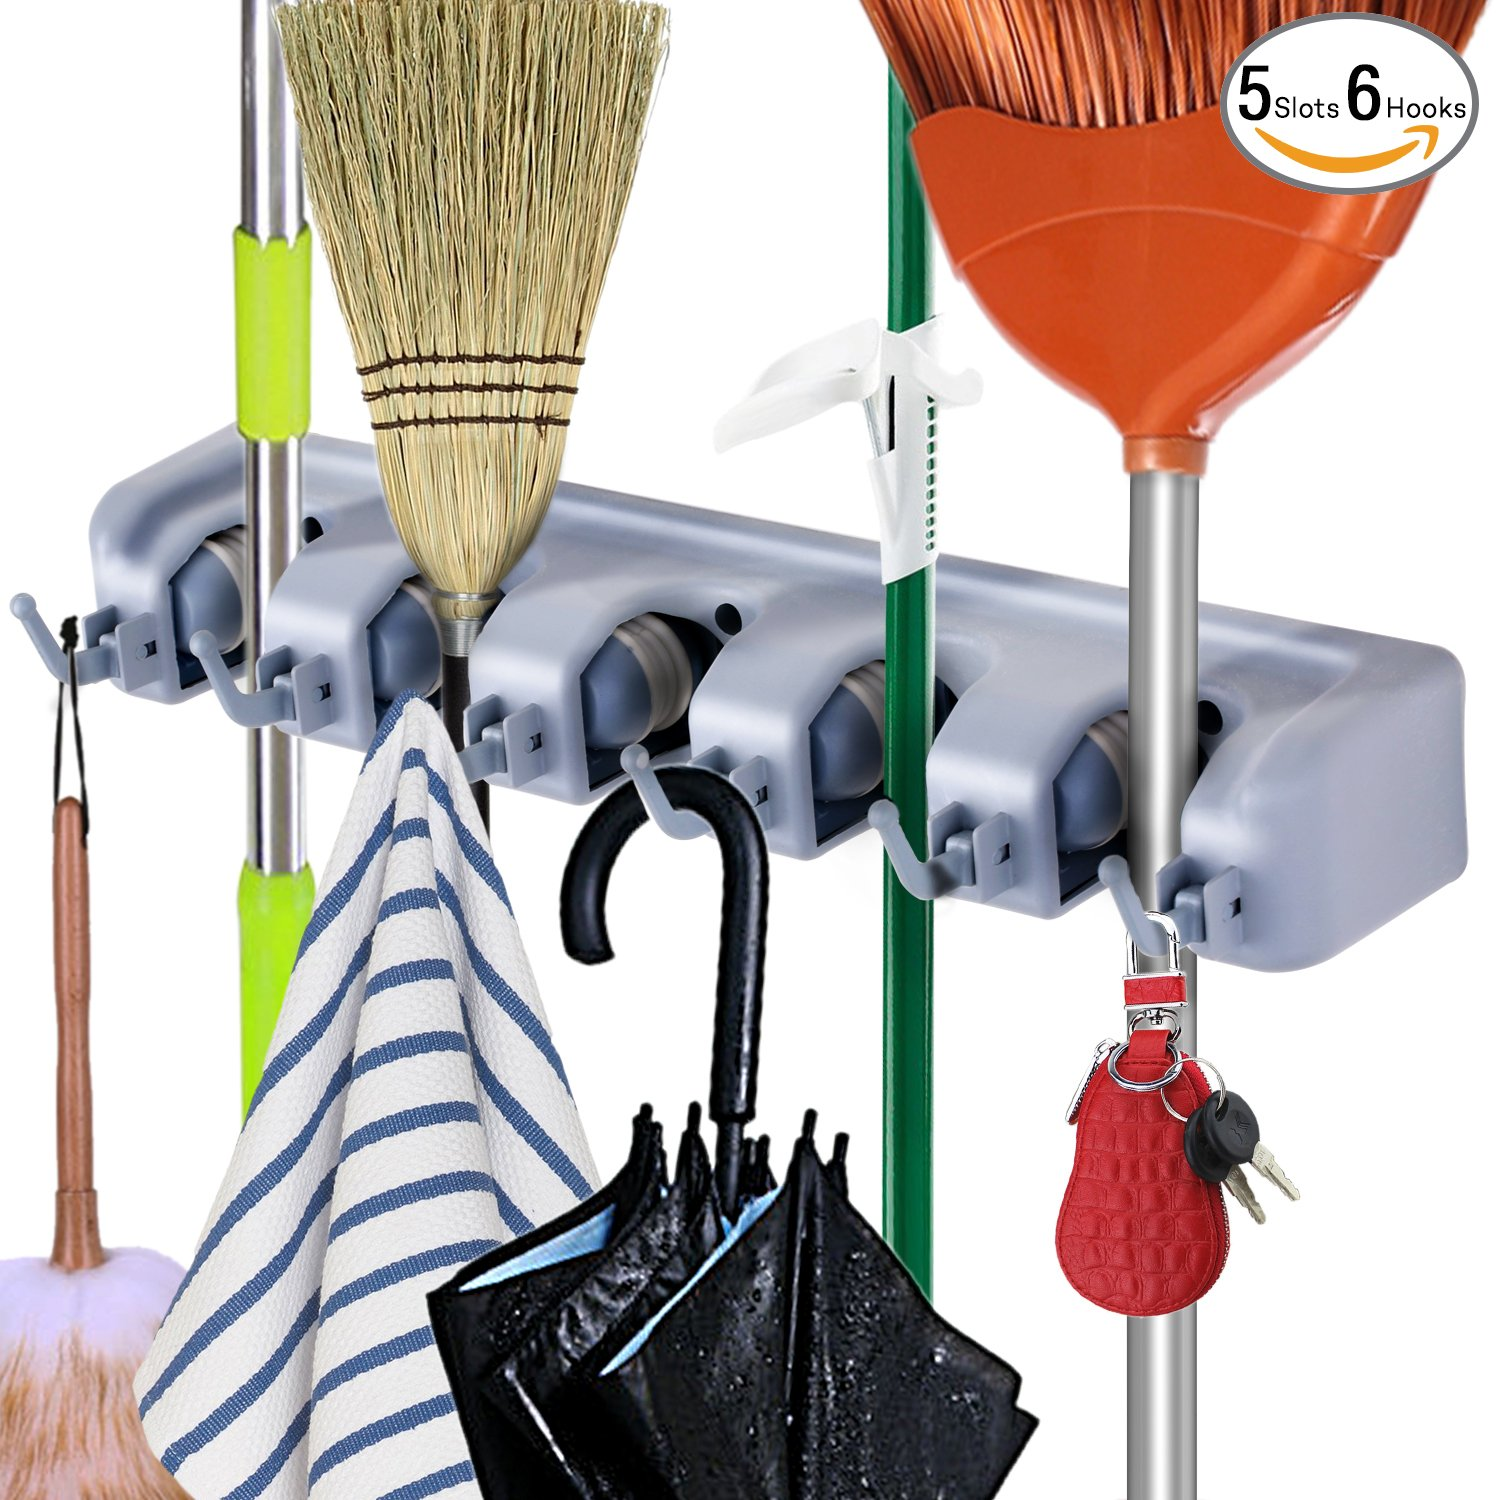 Durable Broom and Mop Holder Rack, Wall Mounted Mop Hanging Organizer by DealBang with 5 Slots & 6 Foldable Hooks Multi-used for Storage Tools on Garage, Kitchen and The Back Side of Door (Grey)